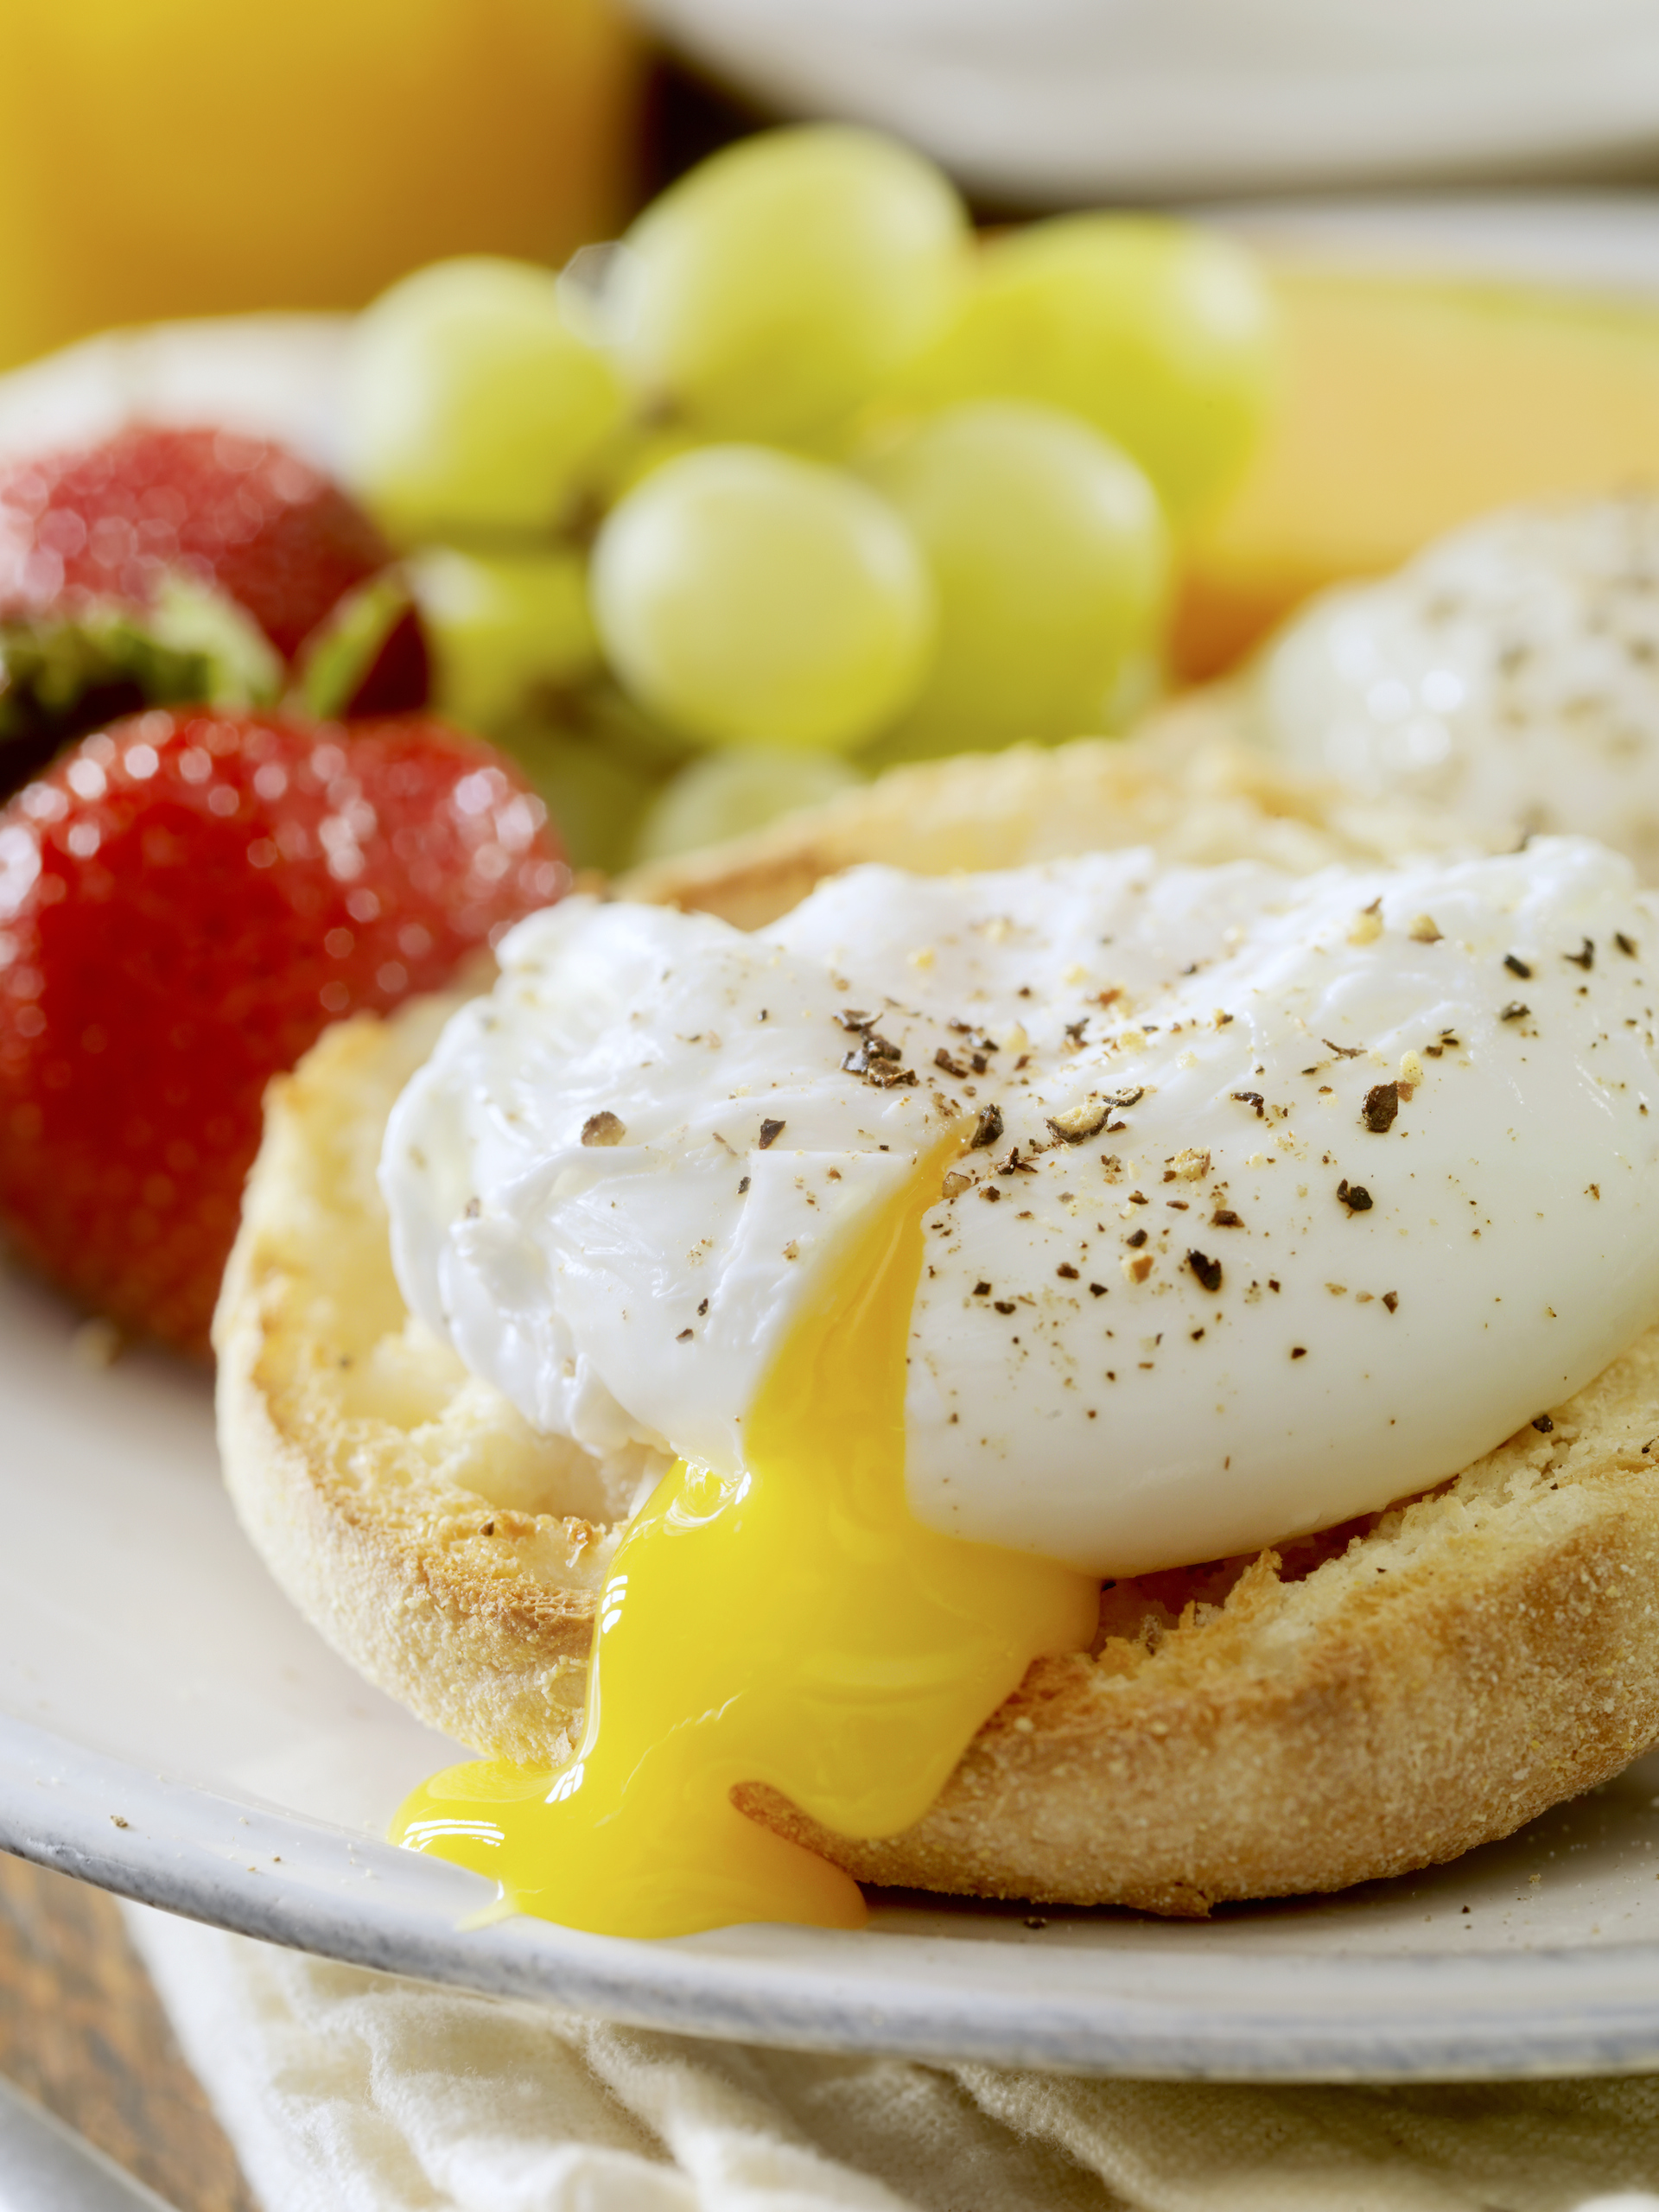 How long are eggs good for after use by date in Perth